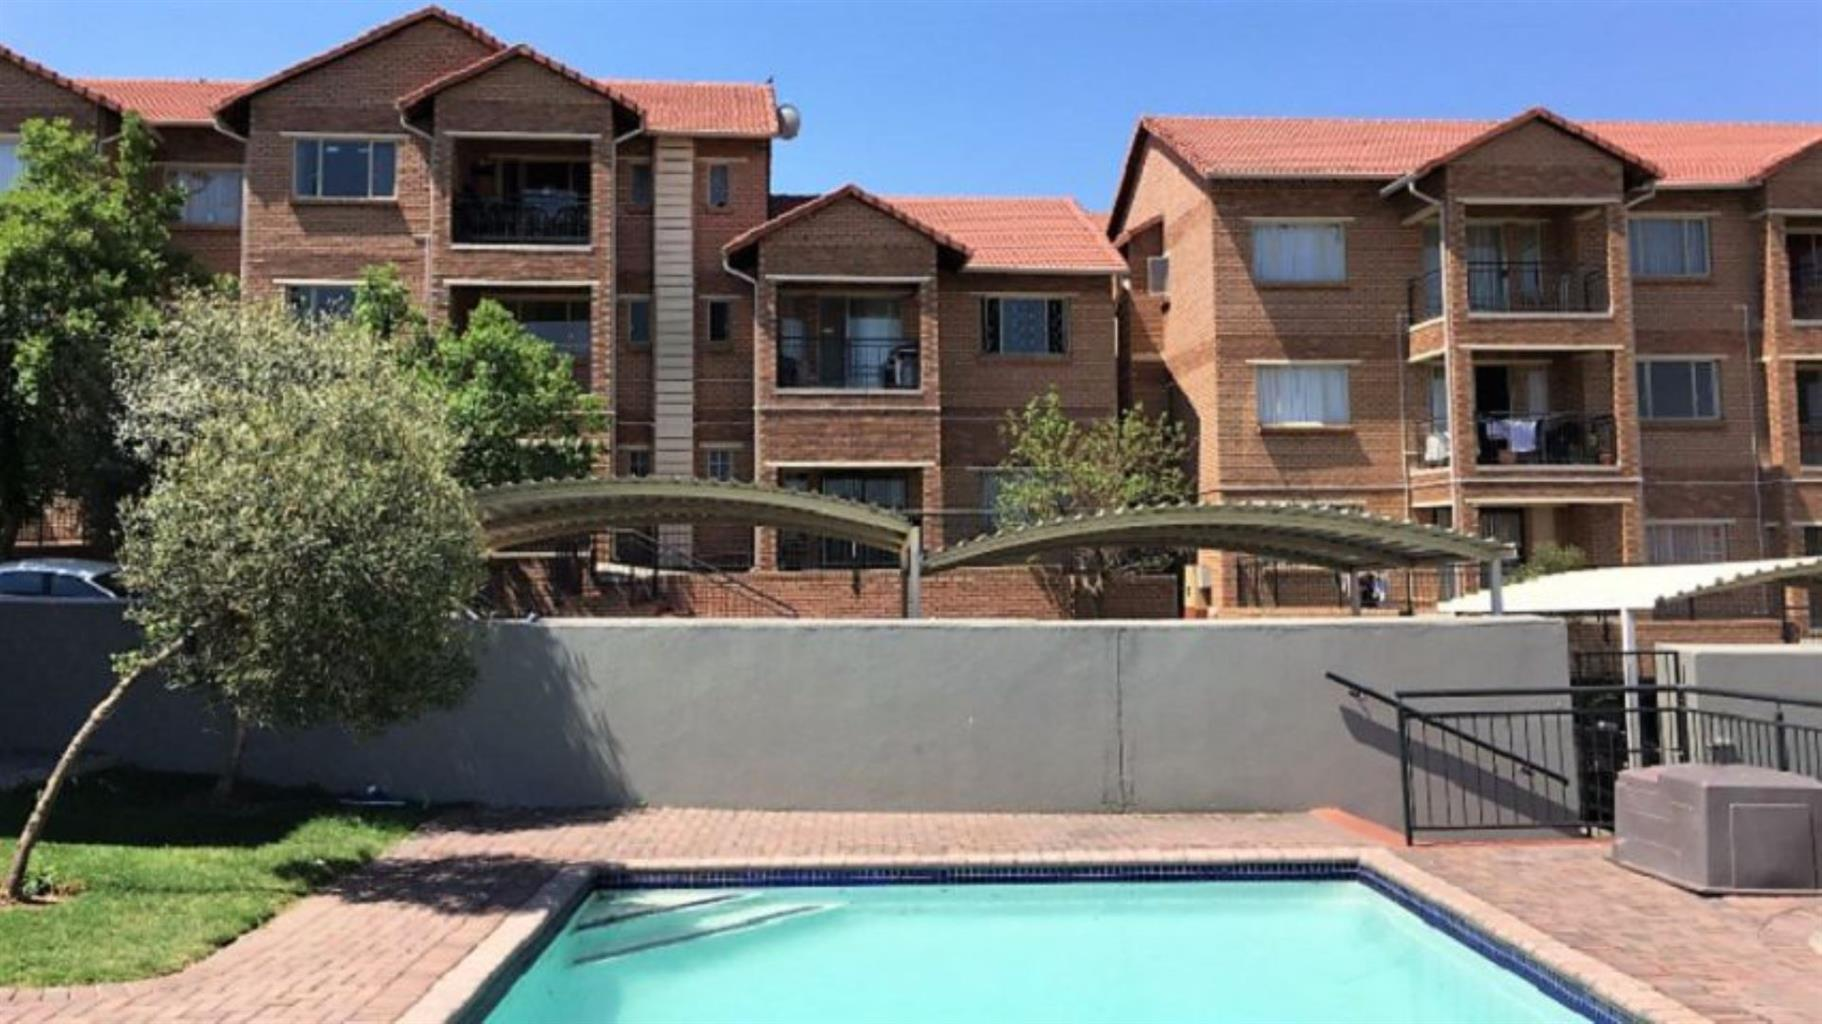 Townhouse Rental Monthly in NORTHWOLD